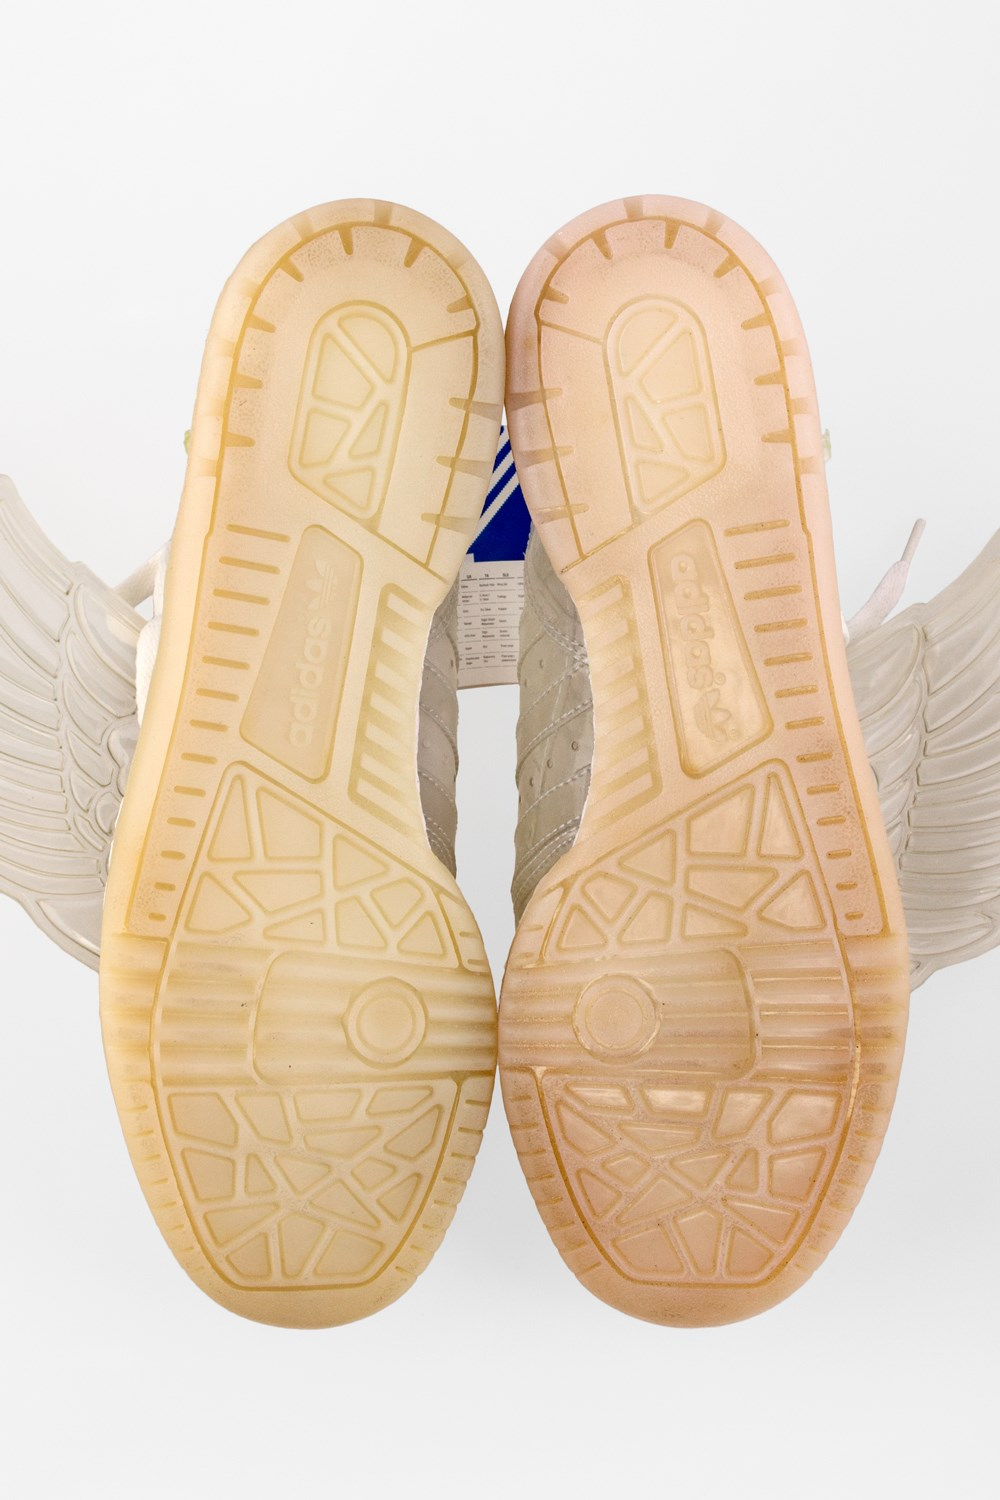 037237ace415 ... Transparent Sneakers with Wings   Size  8.5 UK - Fit  42.5. Mouse ...